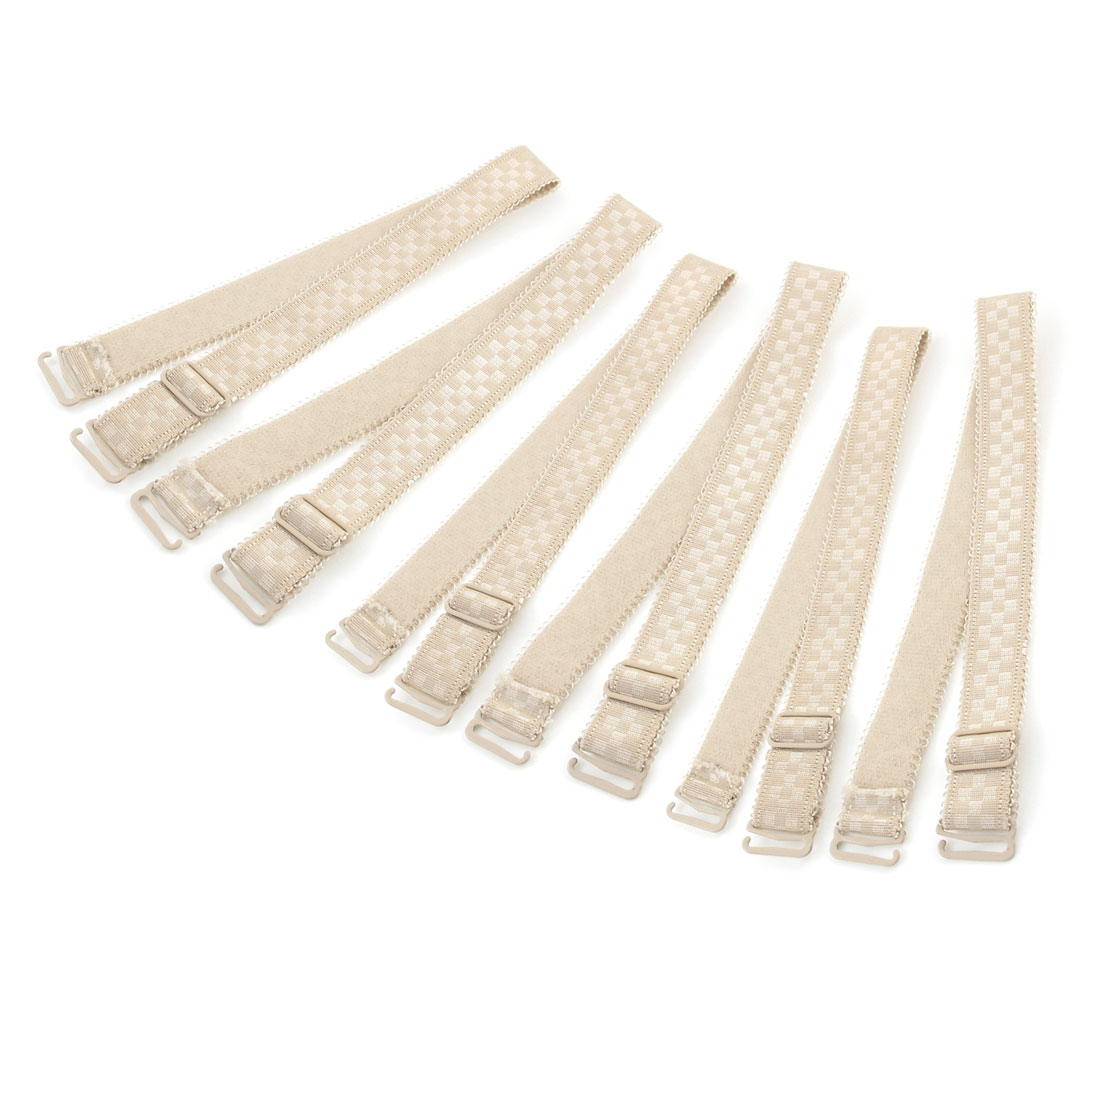 Woman Beige Plastic Hook End Adjustable Elastic Bra Shoulder Straps Bands 6pcs